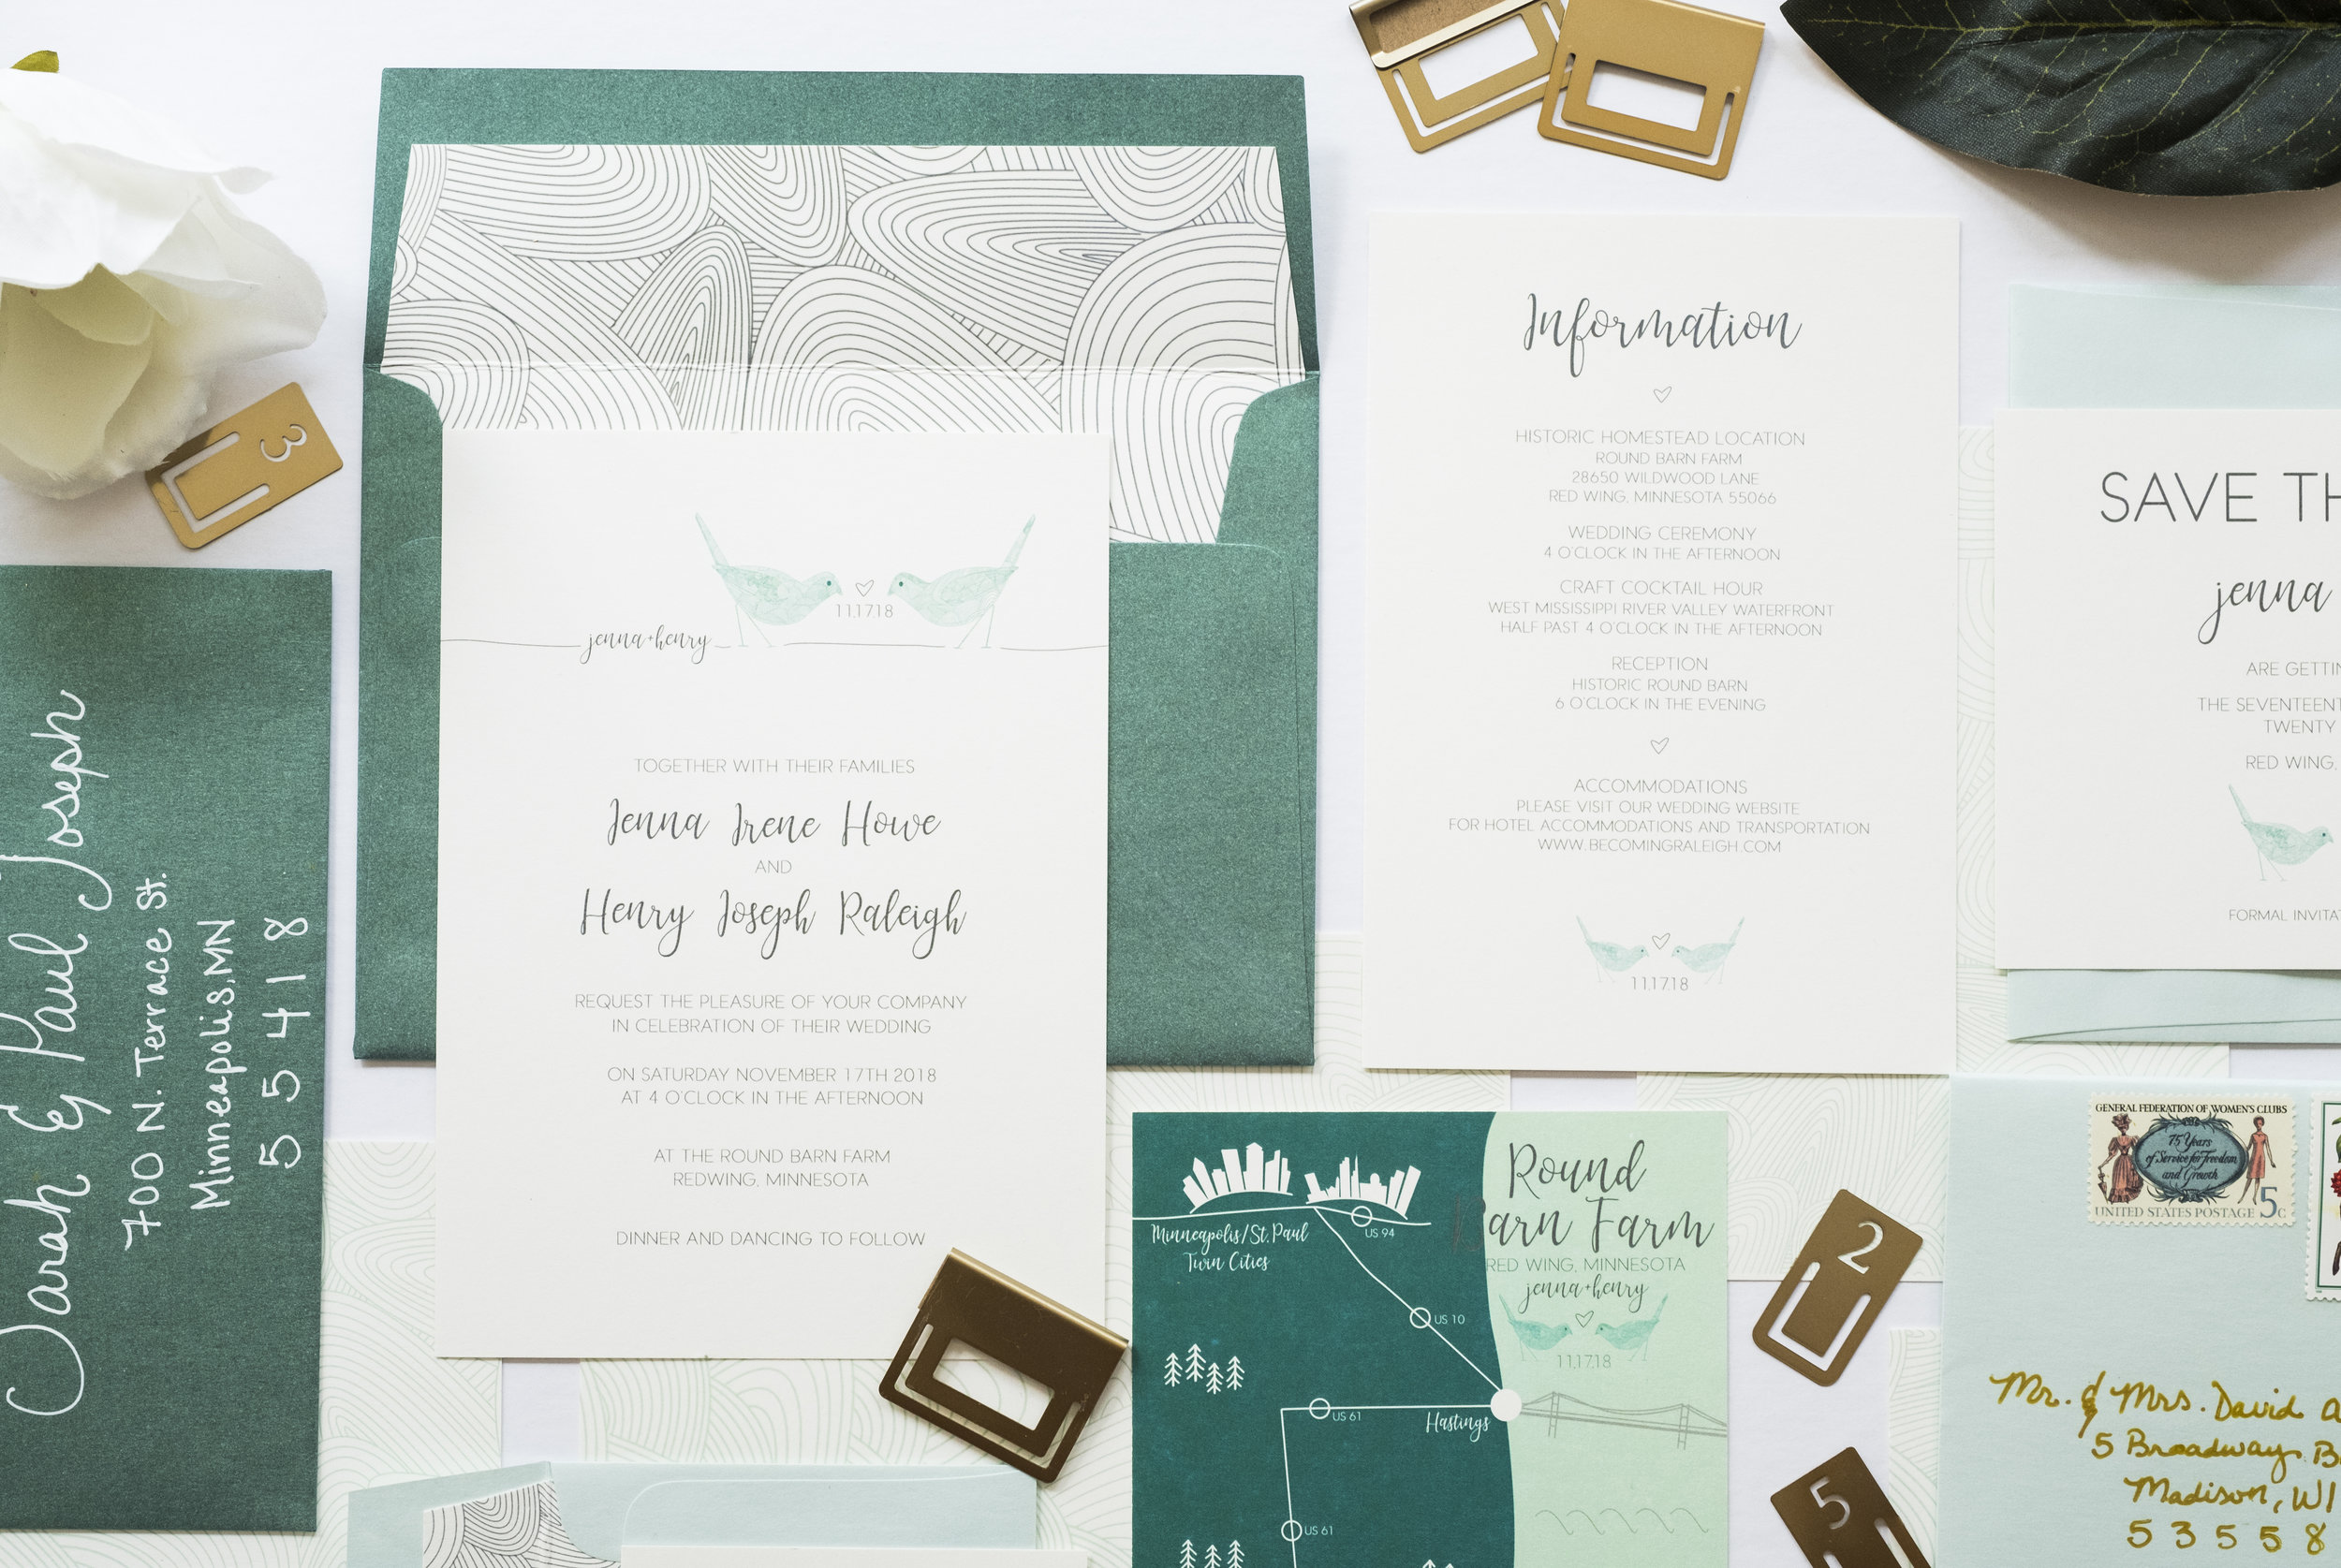 Lovebirds_wedding_invitation_custom_huntwrightdesignco_005.JPG